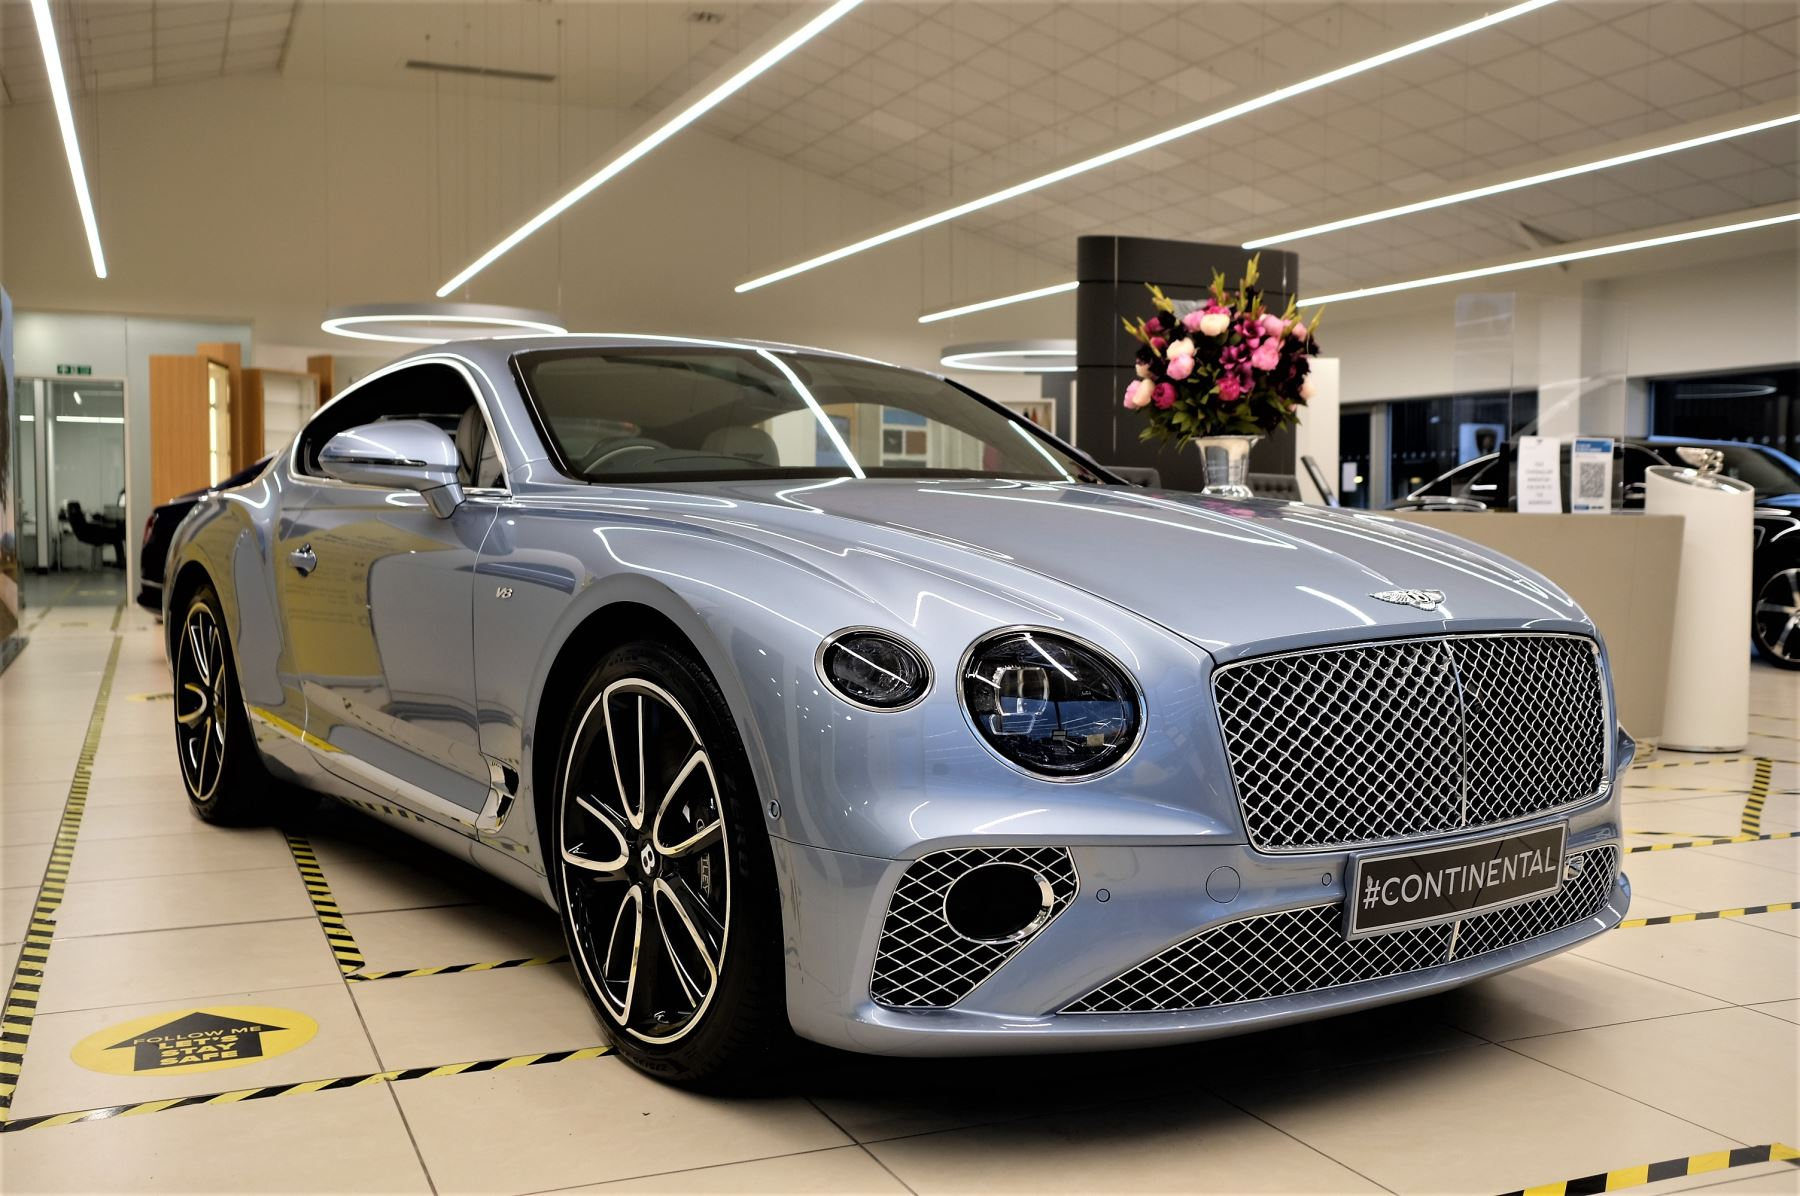 Bentley Continental GT 4.0 V8 Mulliner Driving Spec 2dr Auto [Tour Spec] Automatic Coupe (2020)